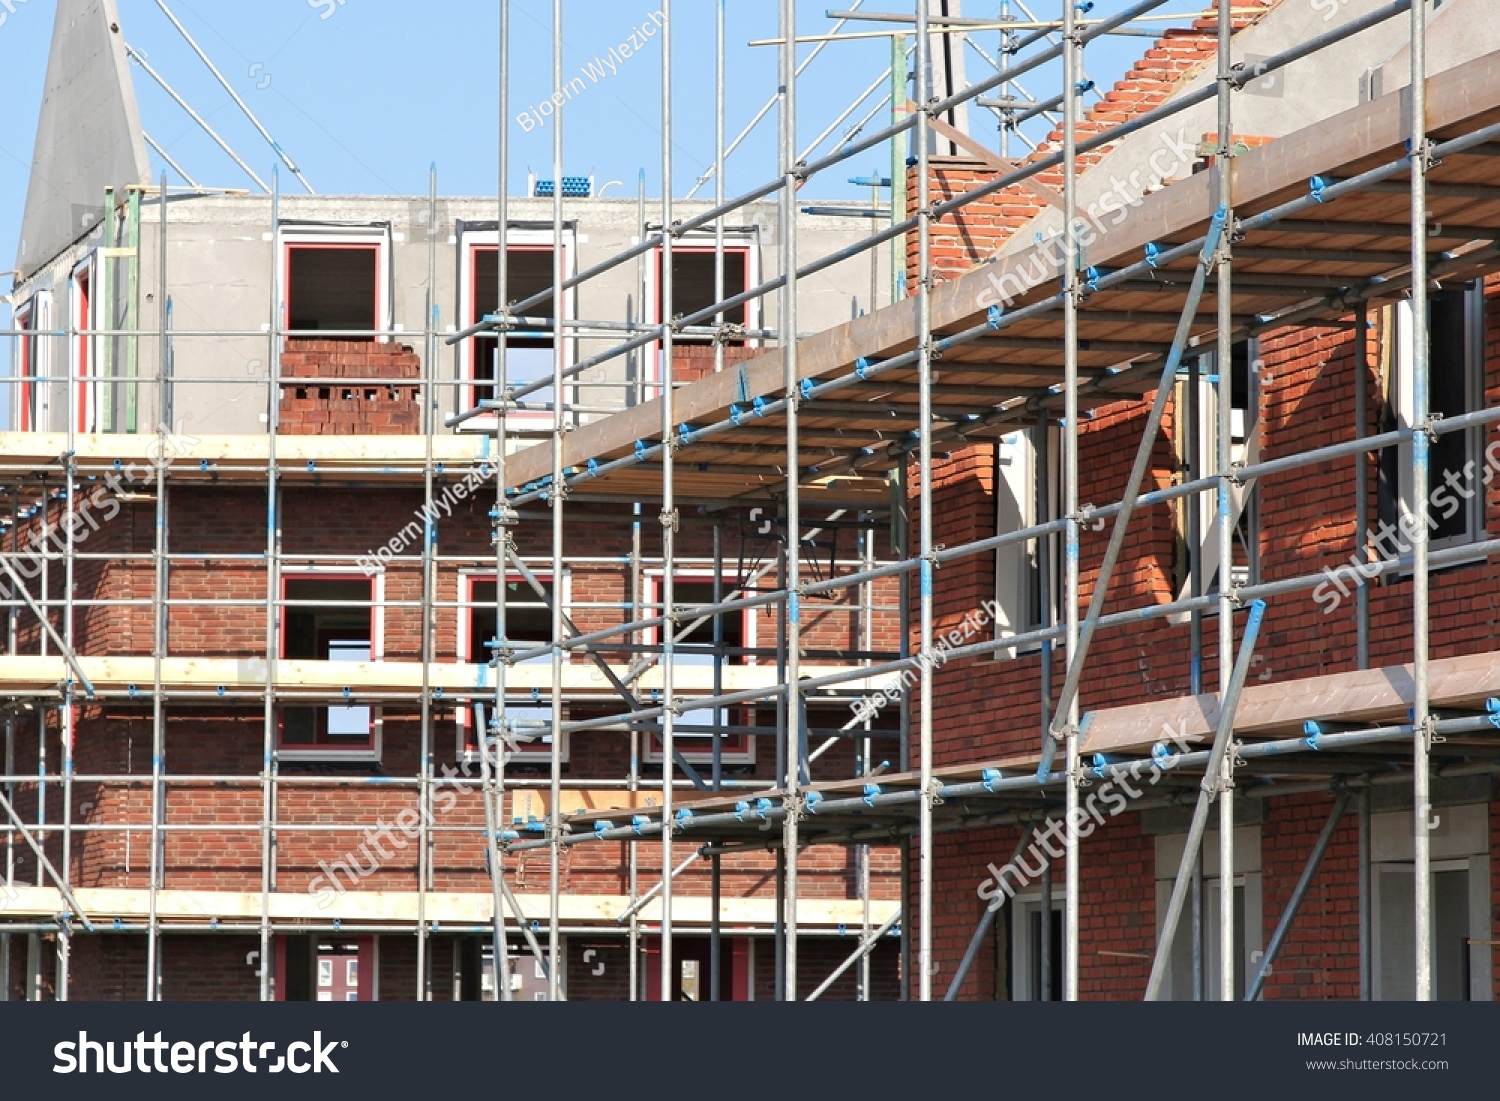 scaffolding at a residential building currently under construction